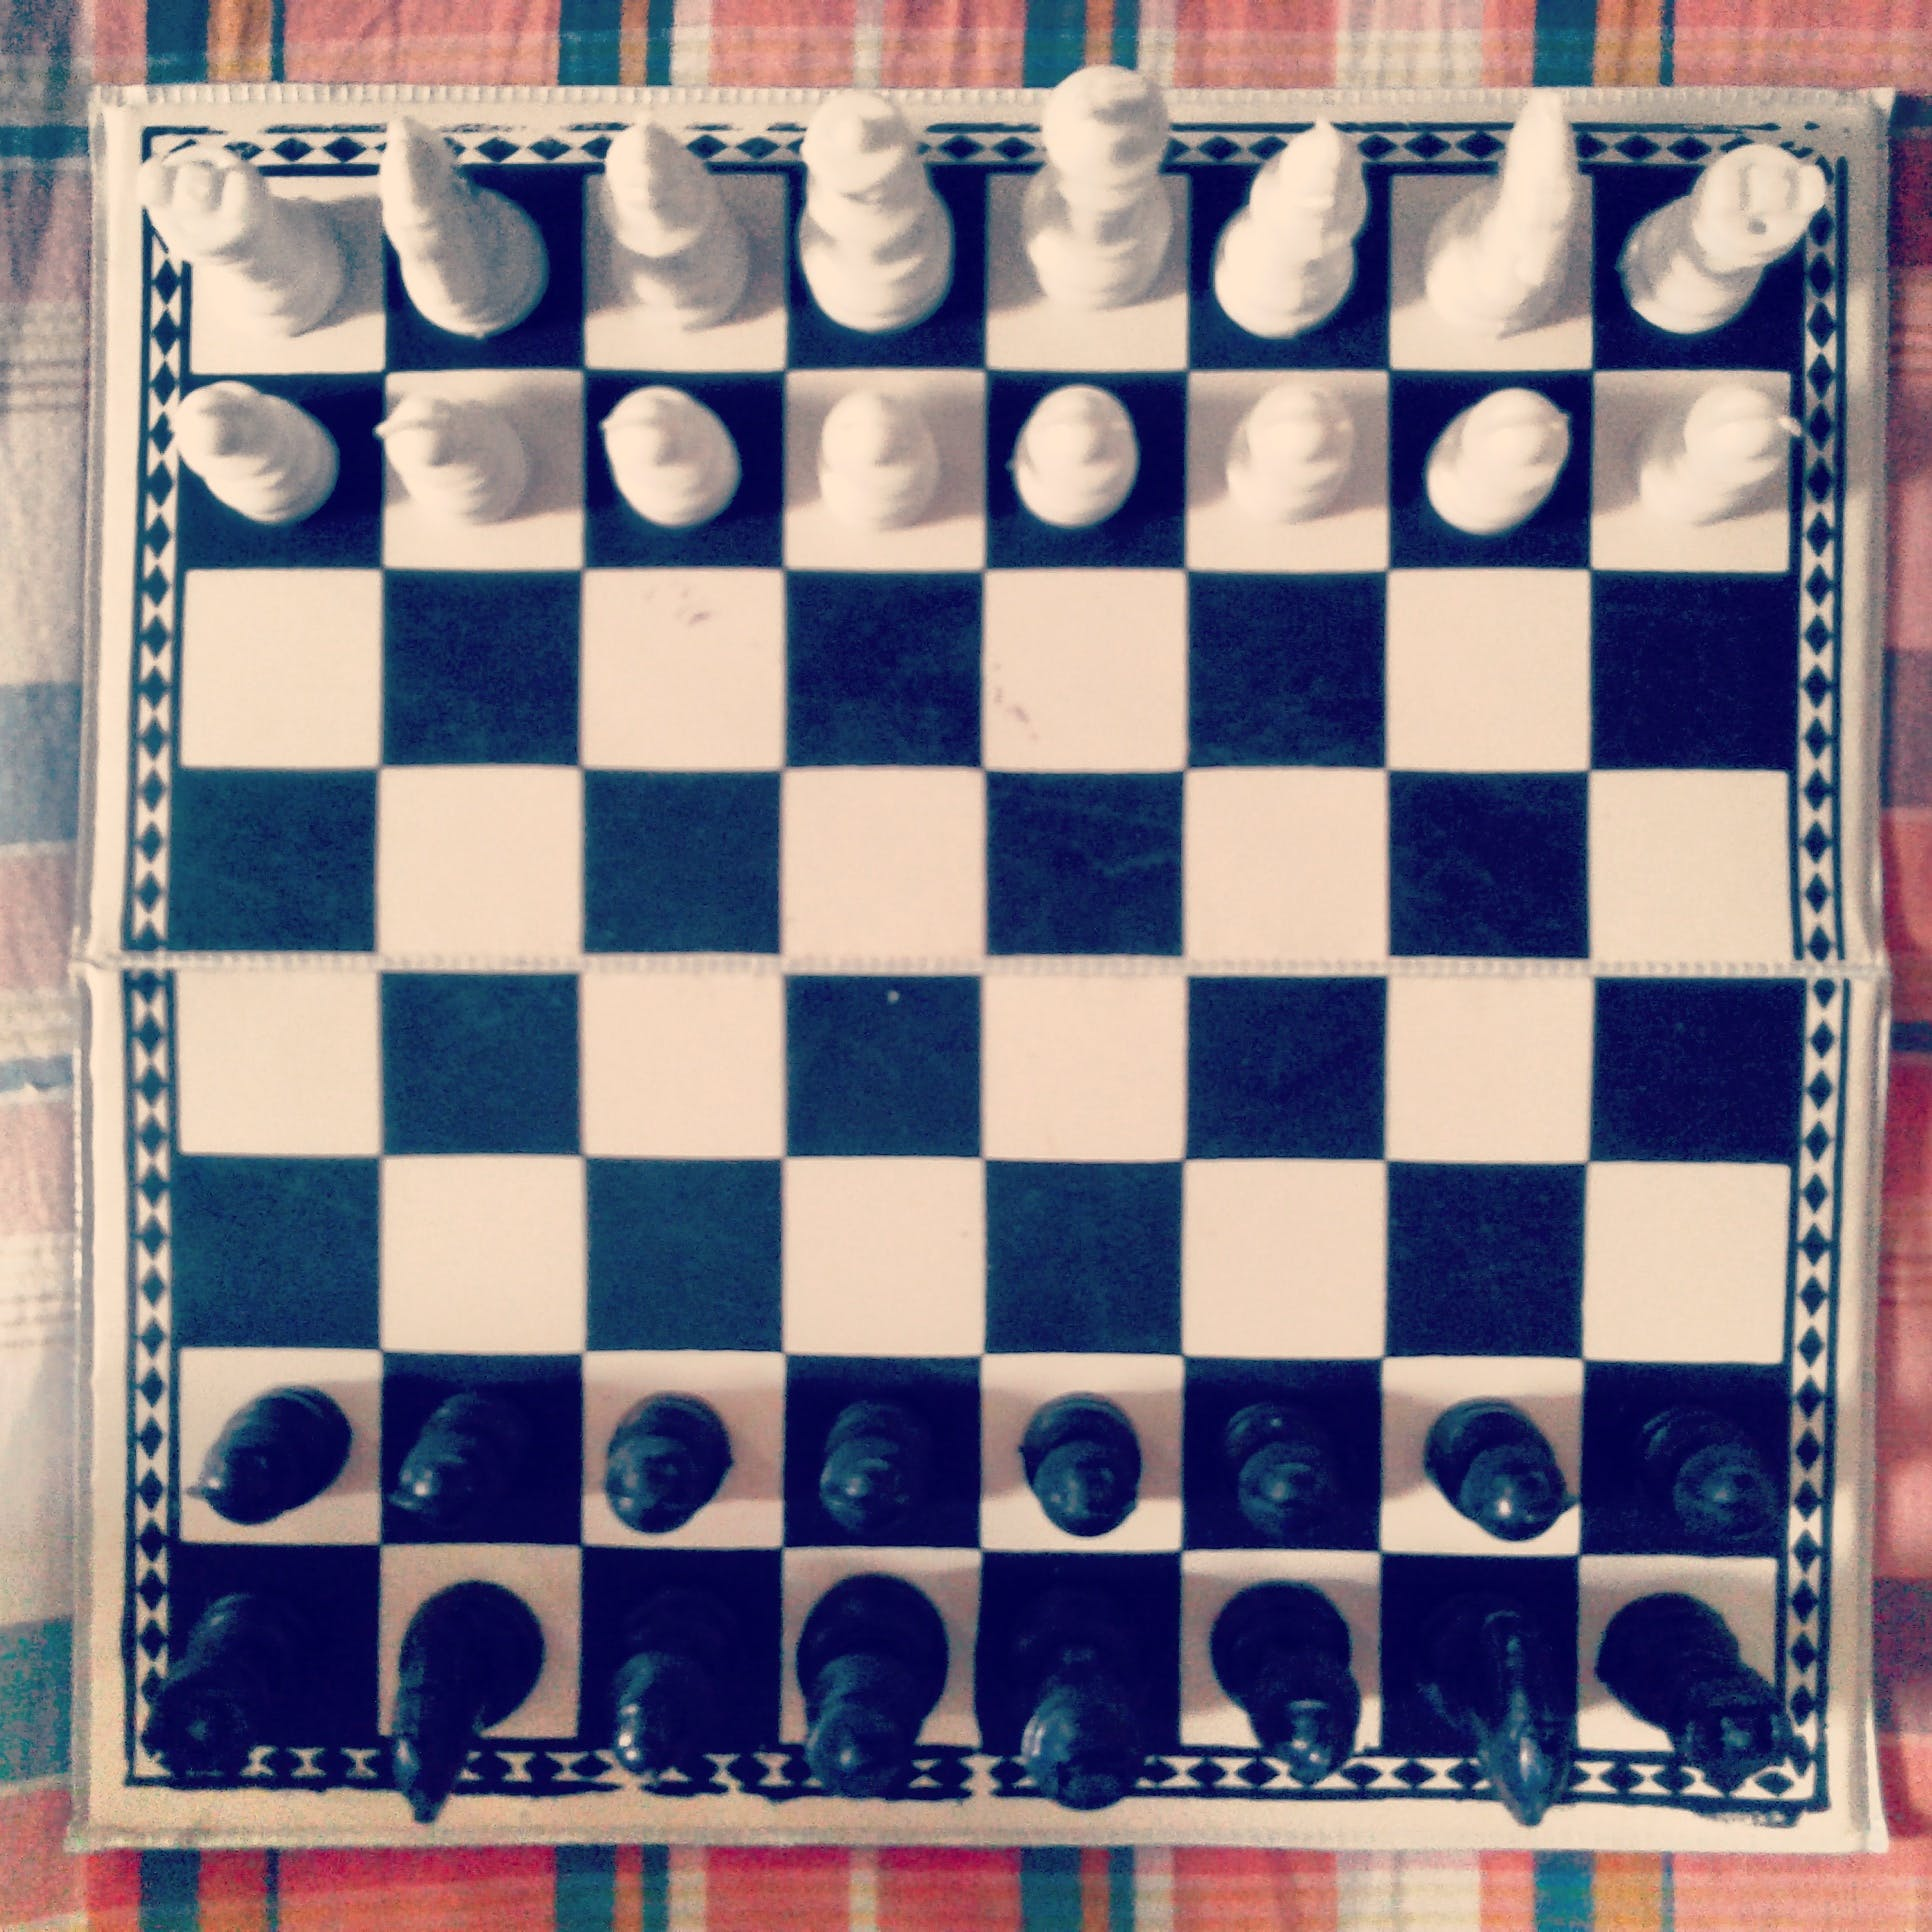 Free stock photo of chess board